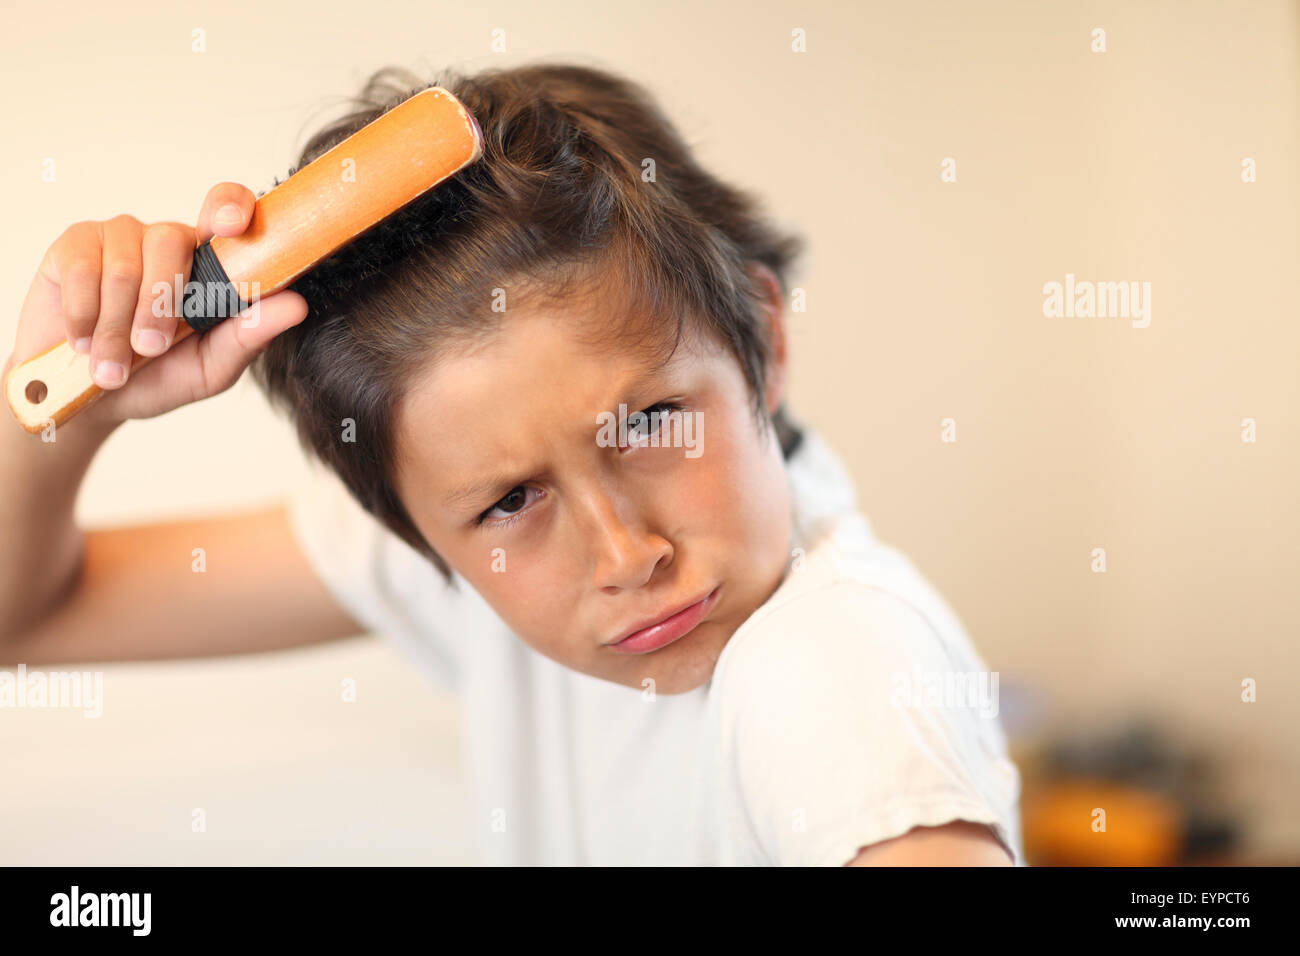 Bed time - boy brushes his hair - very shallow depth of field - Stock Image